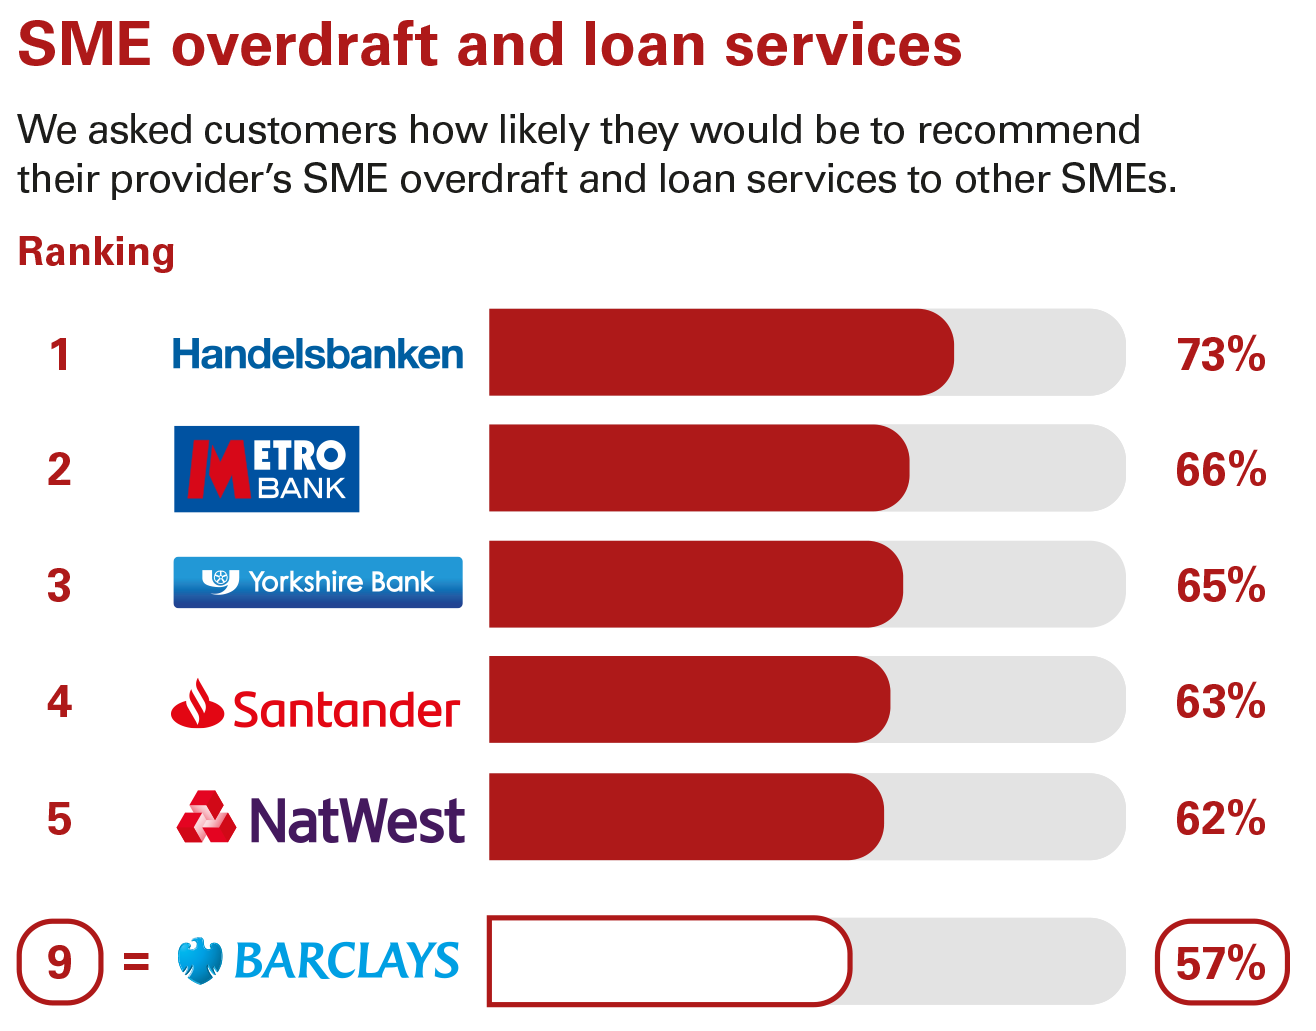 SME overdraft and loan sevices ranking - Business current accounts